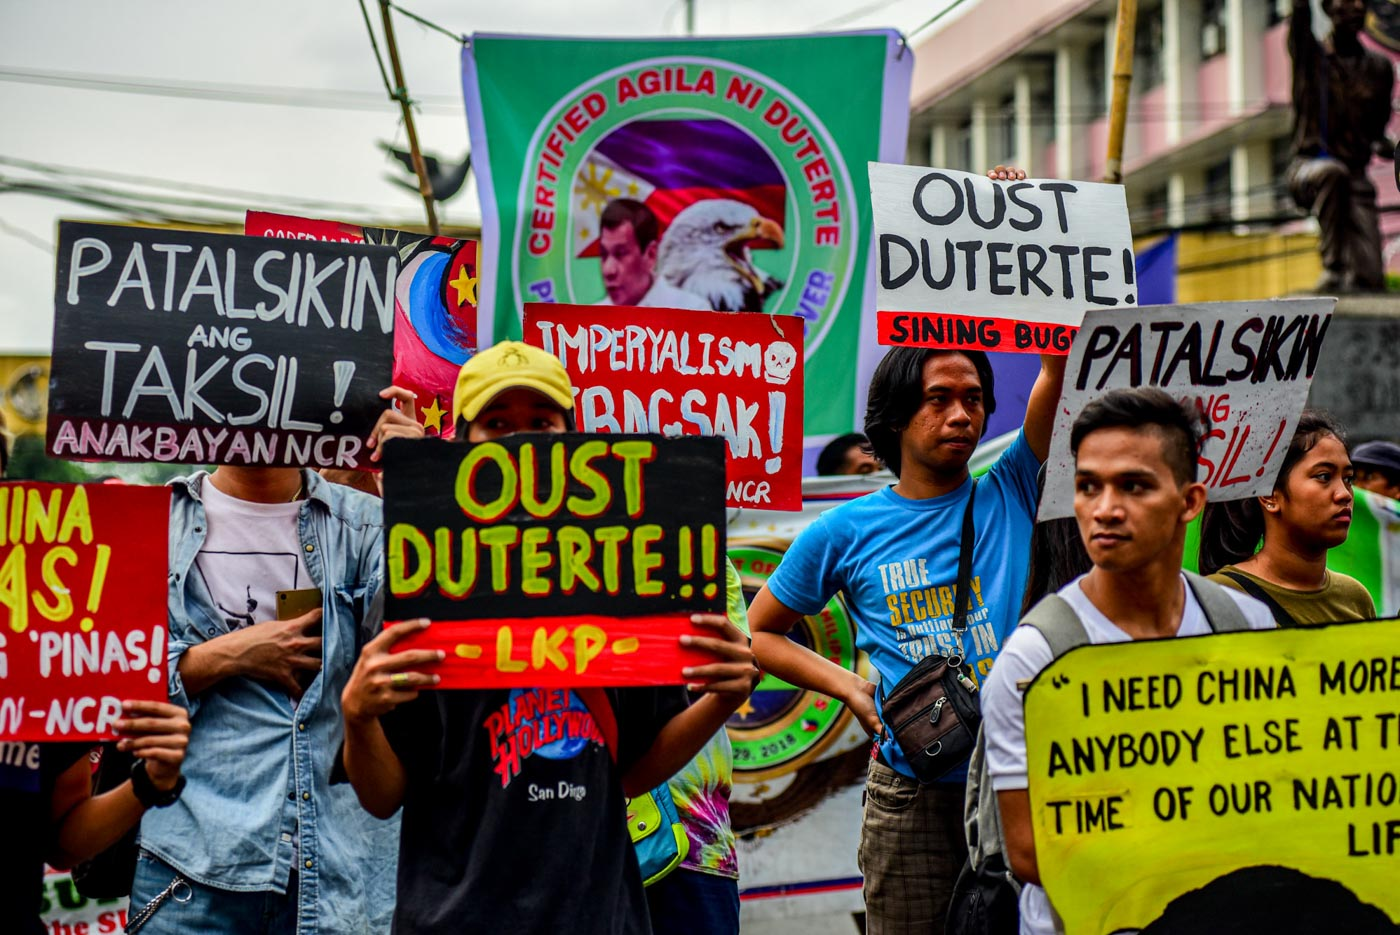 DEFEND. Protesters rally at Mendiola in Manila on the anniversary of the declaration of the Hague ruling to continue to press the government to act on Chinese incursions at the West Philippine Sea on July 12, 2019. Photo by Maria Tan/Rappler